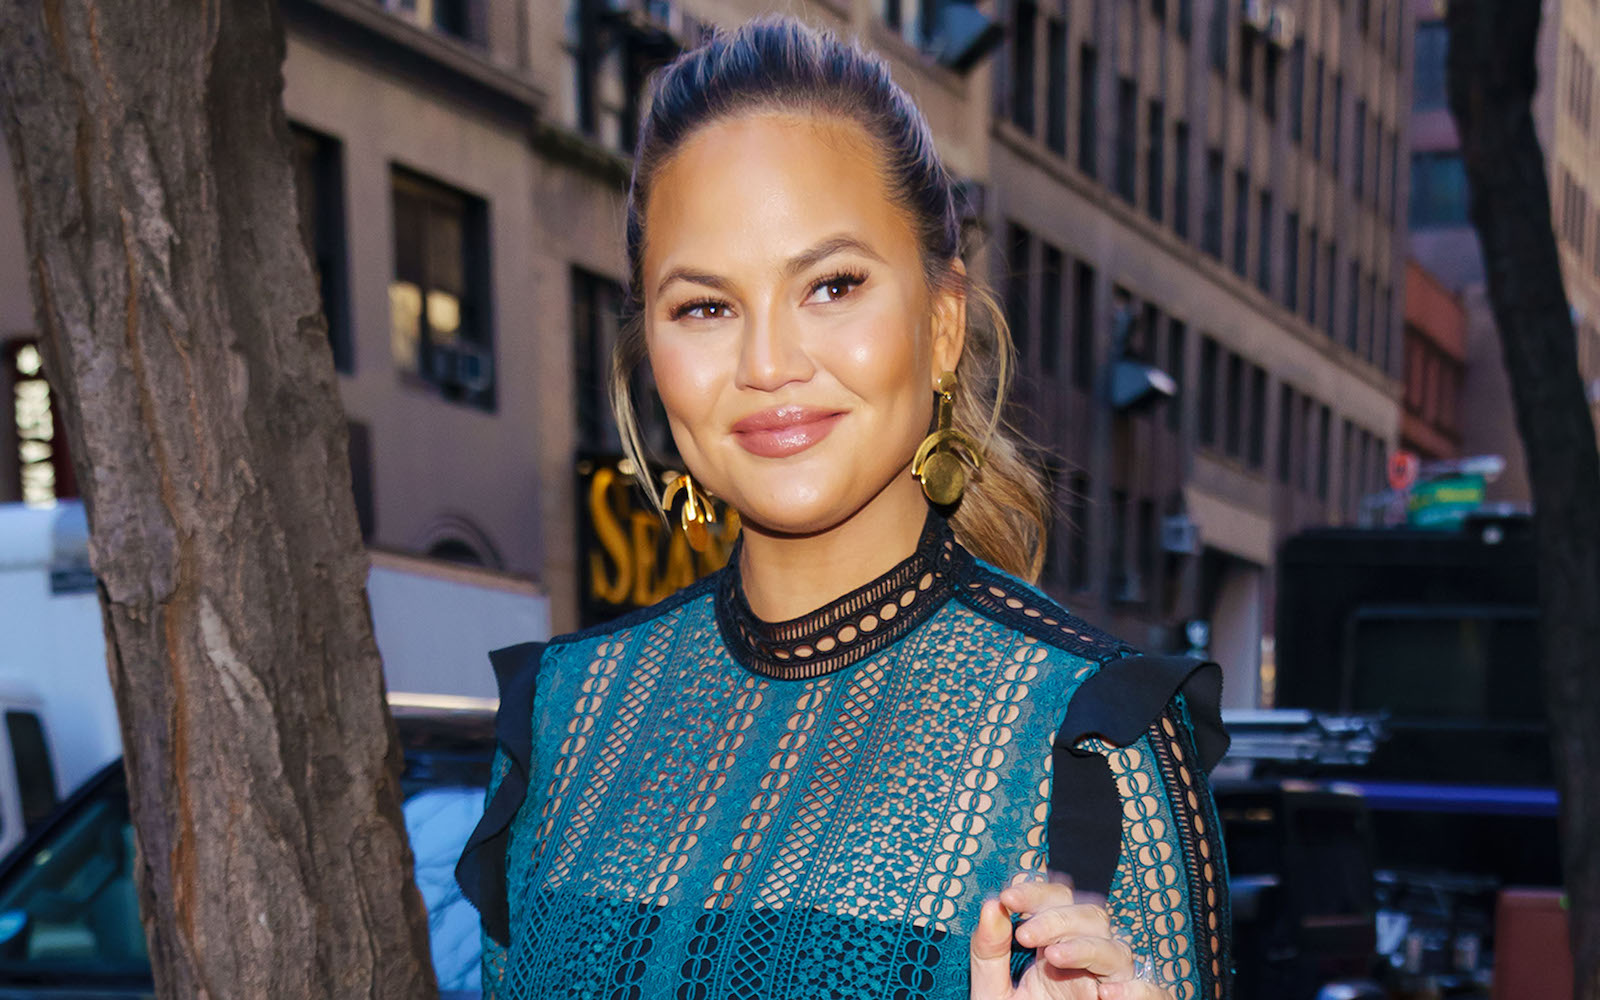 Chrissy Teigen Revealed Her $8 Secret to Clear Skin While Traveling